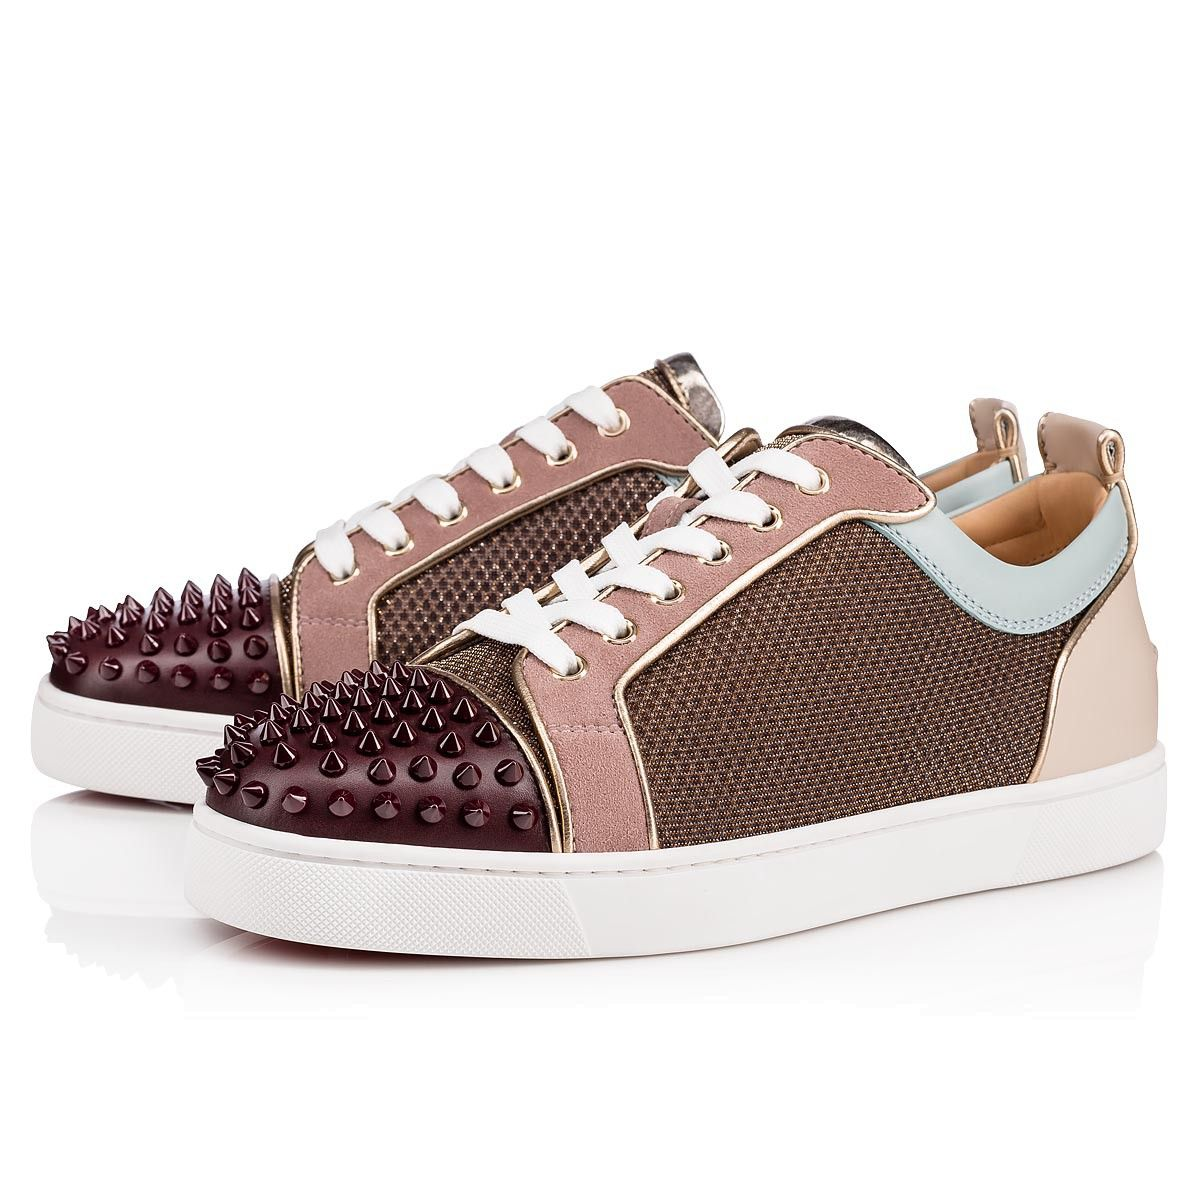 dff2933ea65 CHRISTIAN LOUBOUTIN Louis Junior Spikes Orlato Men's Flat ...